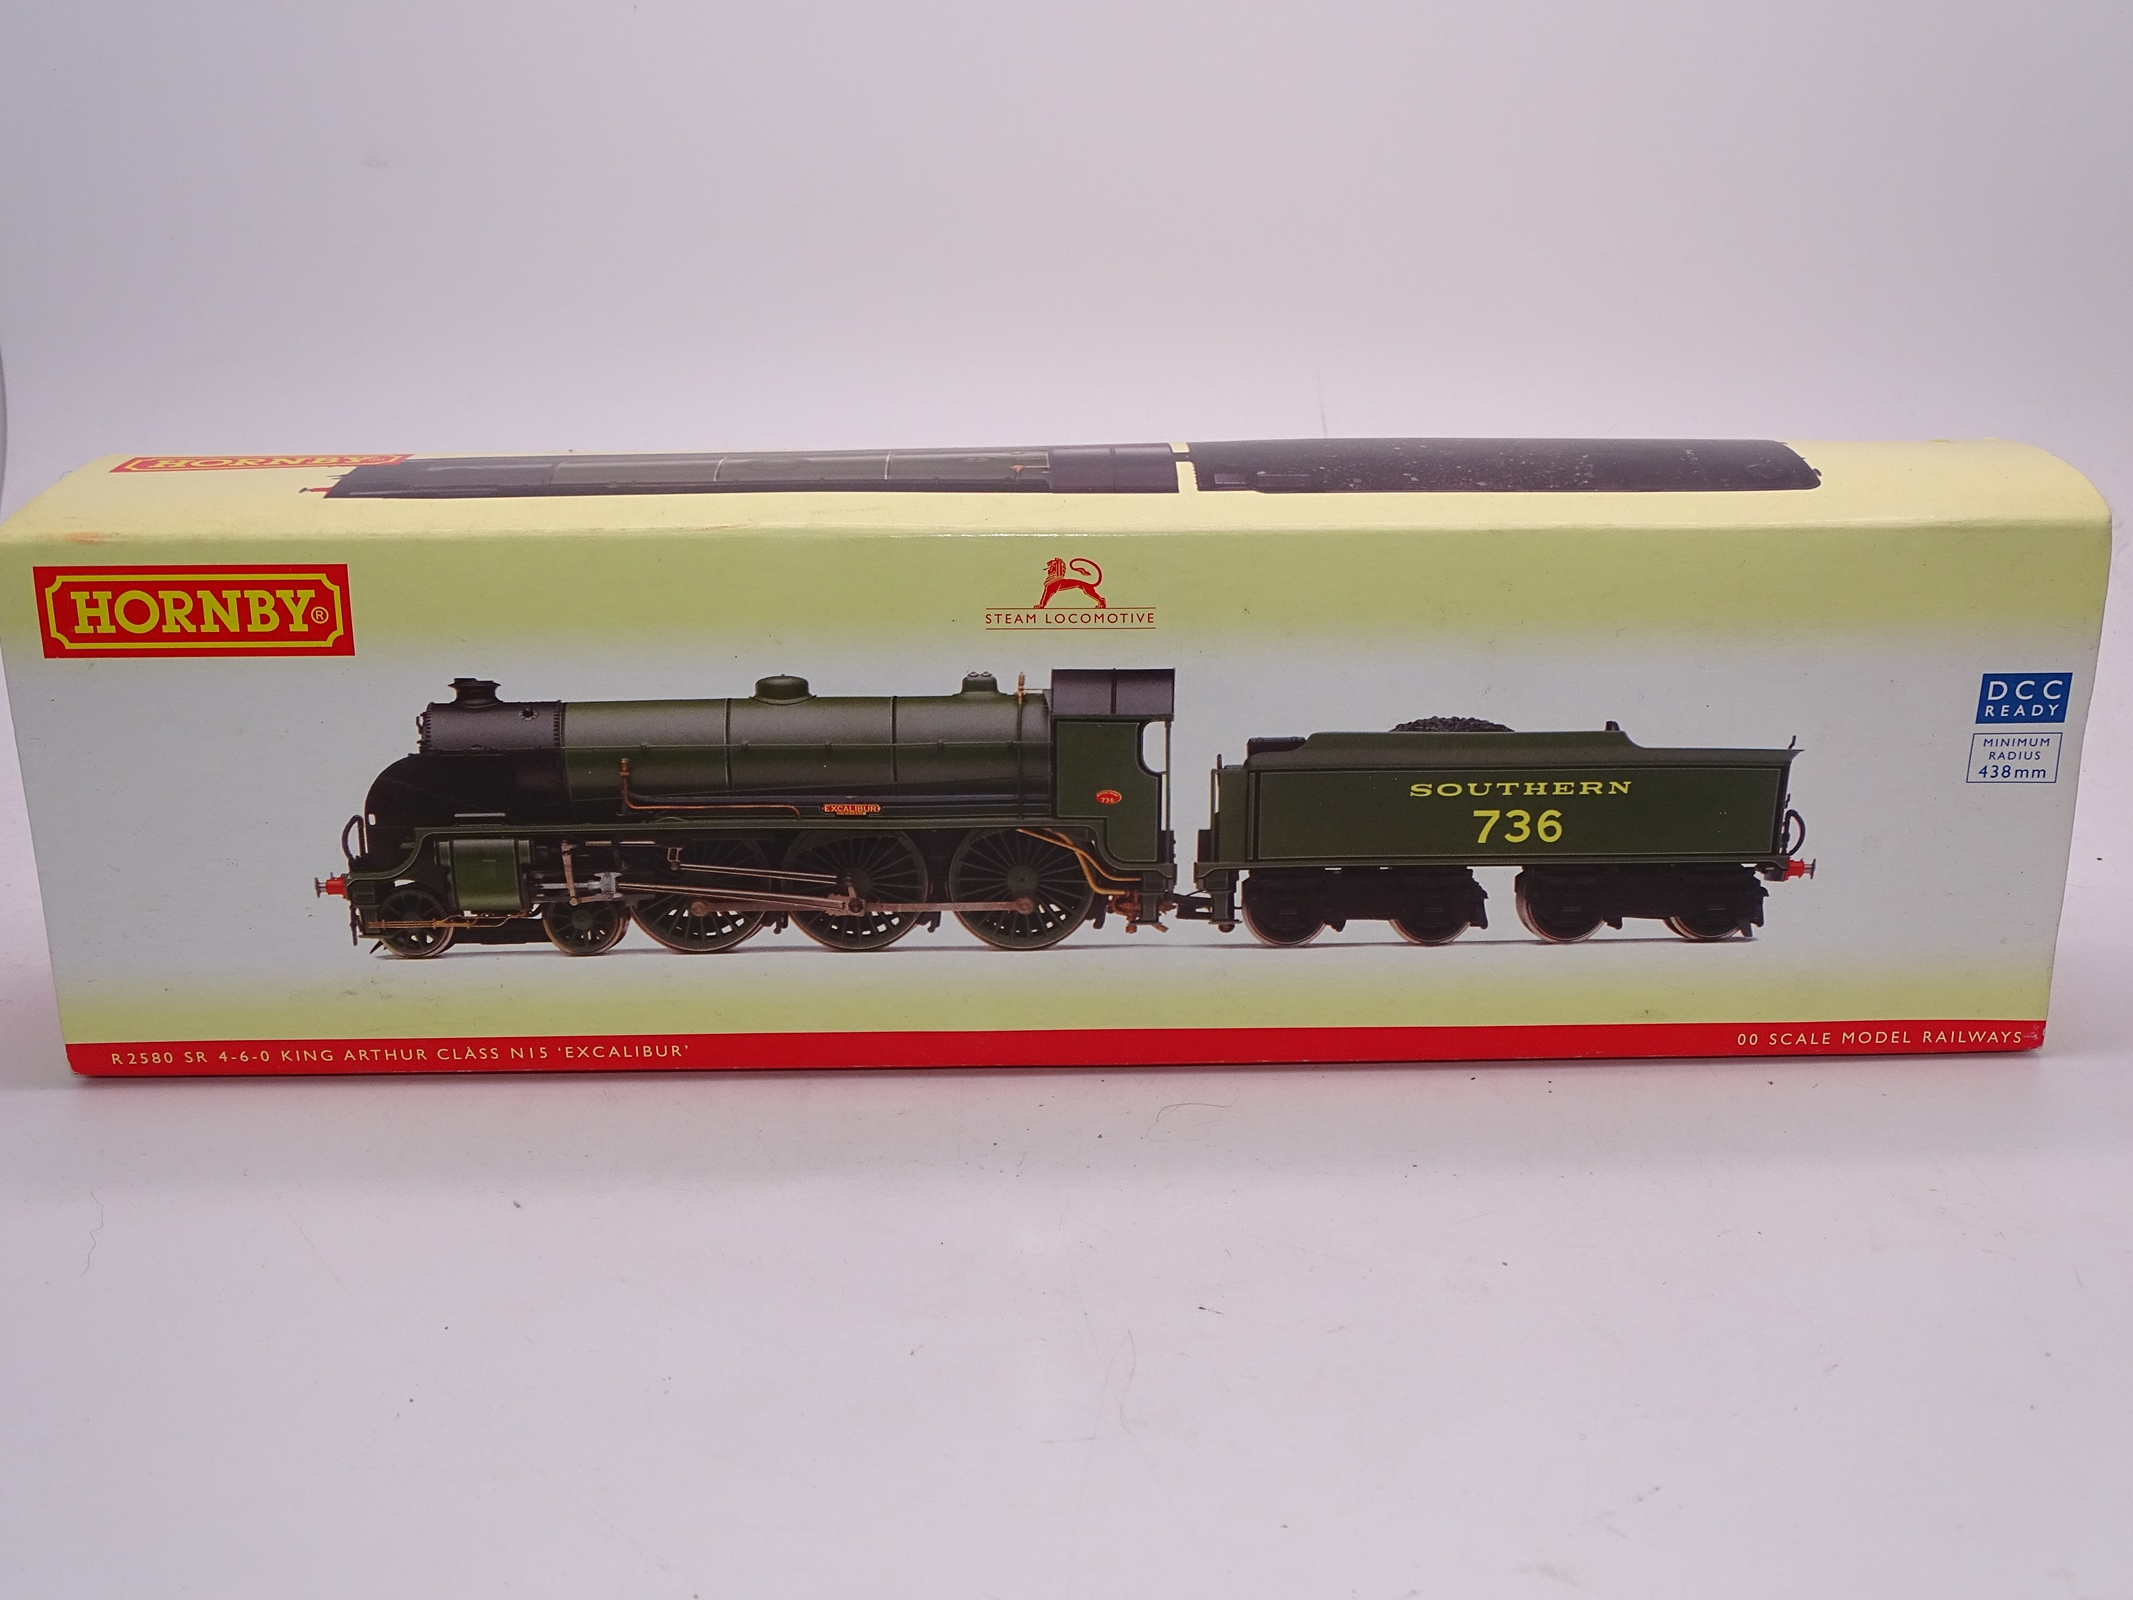 Lot 47 - OO Gauge -A Hornby R2580 Class N15 steam locomotive in Southern Railway livery - 'Excalibur' - VG in